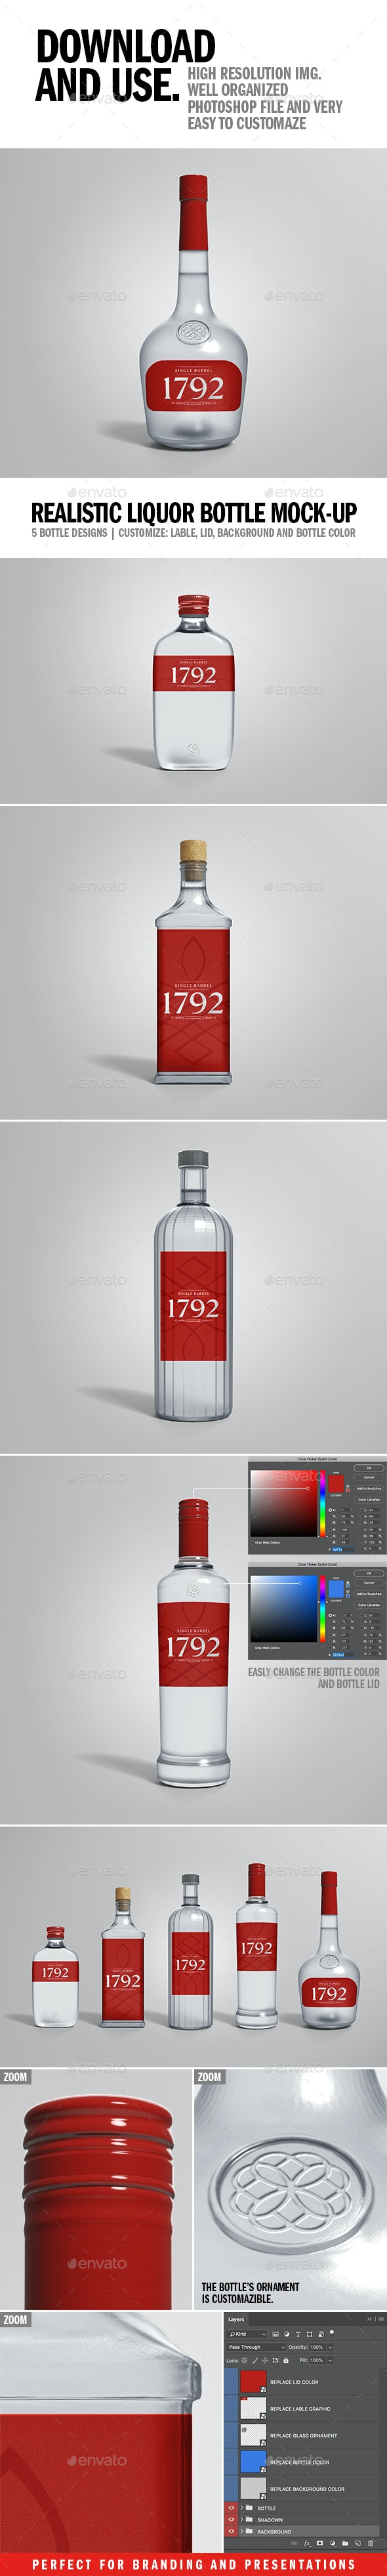 Realistic Liquor Bottle Mock-up - Packaging Product Mock-Ups